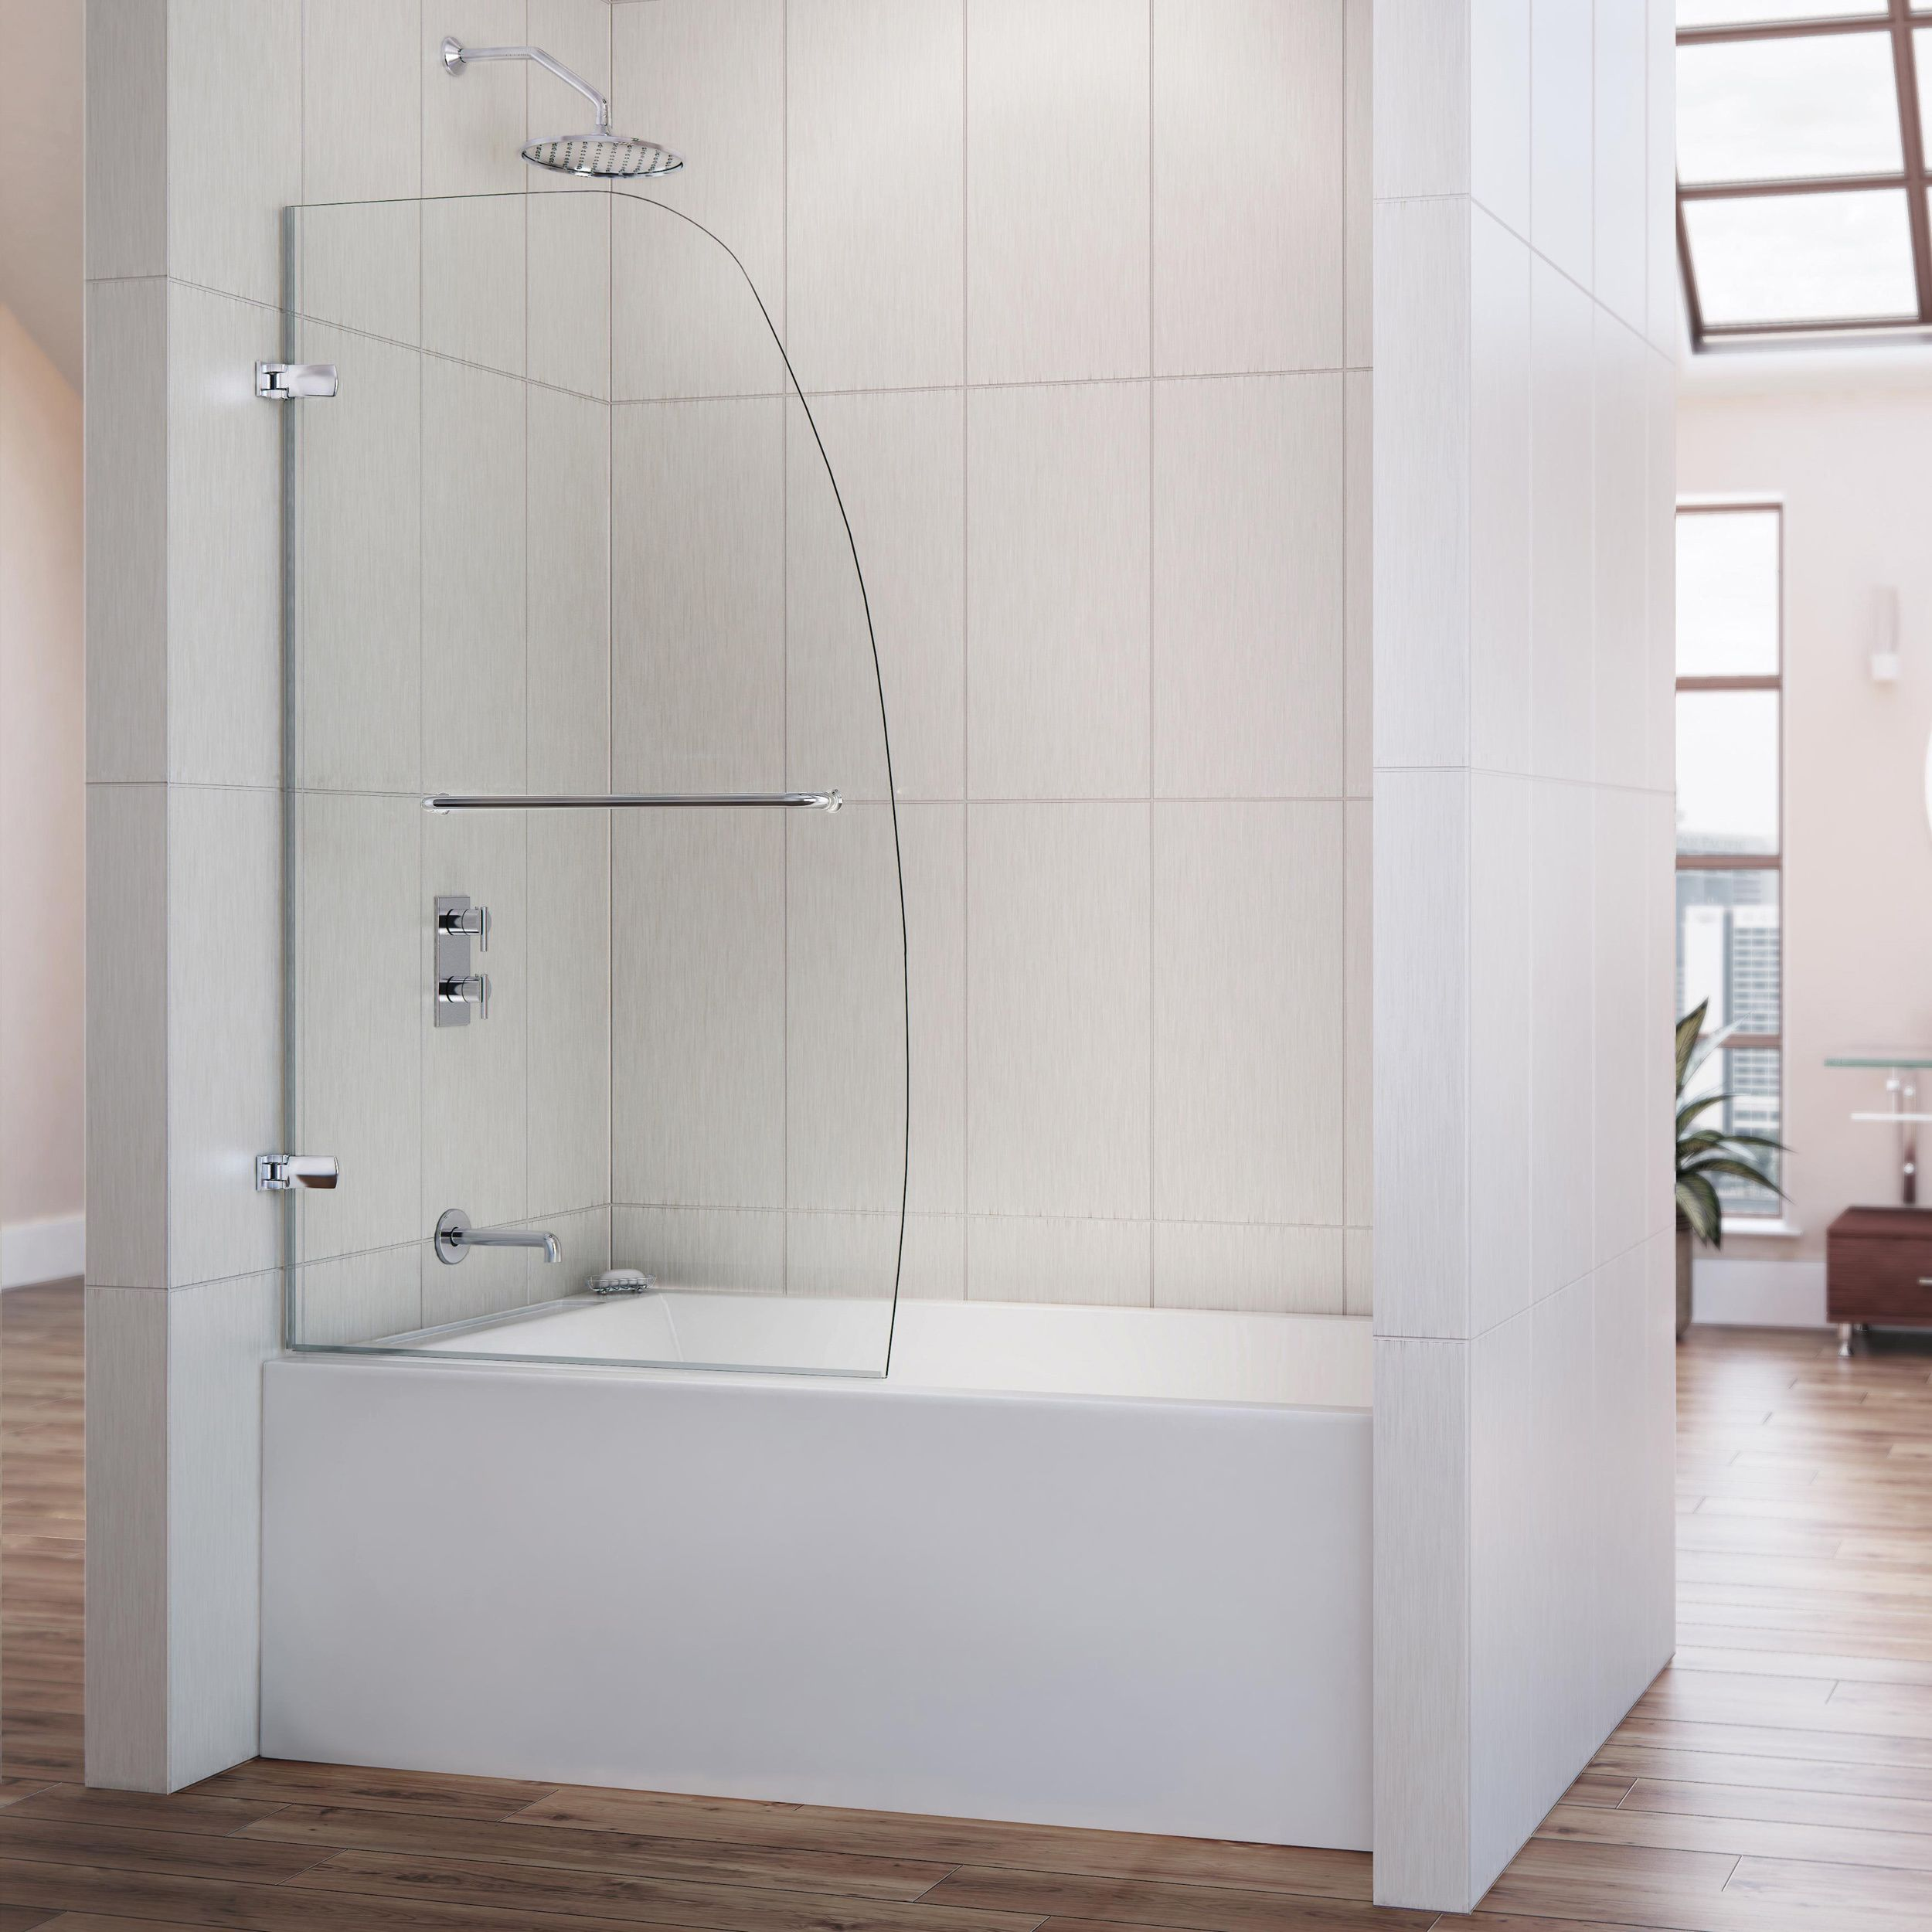 The Aqua Uno Is A Single Panel Swing Tub Door With A Sophisticated